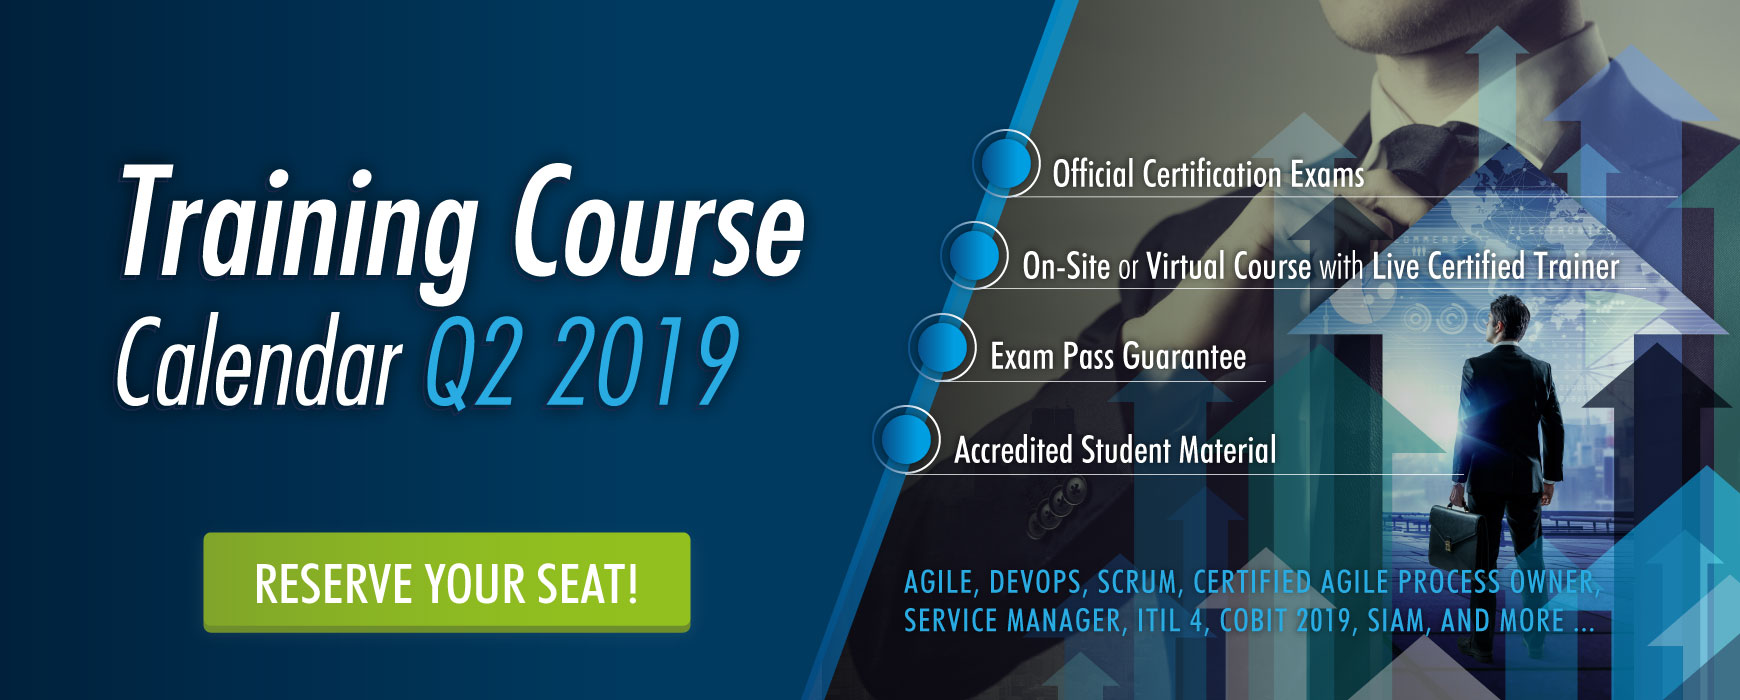 Training Course Calendar Q2 2019